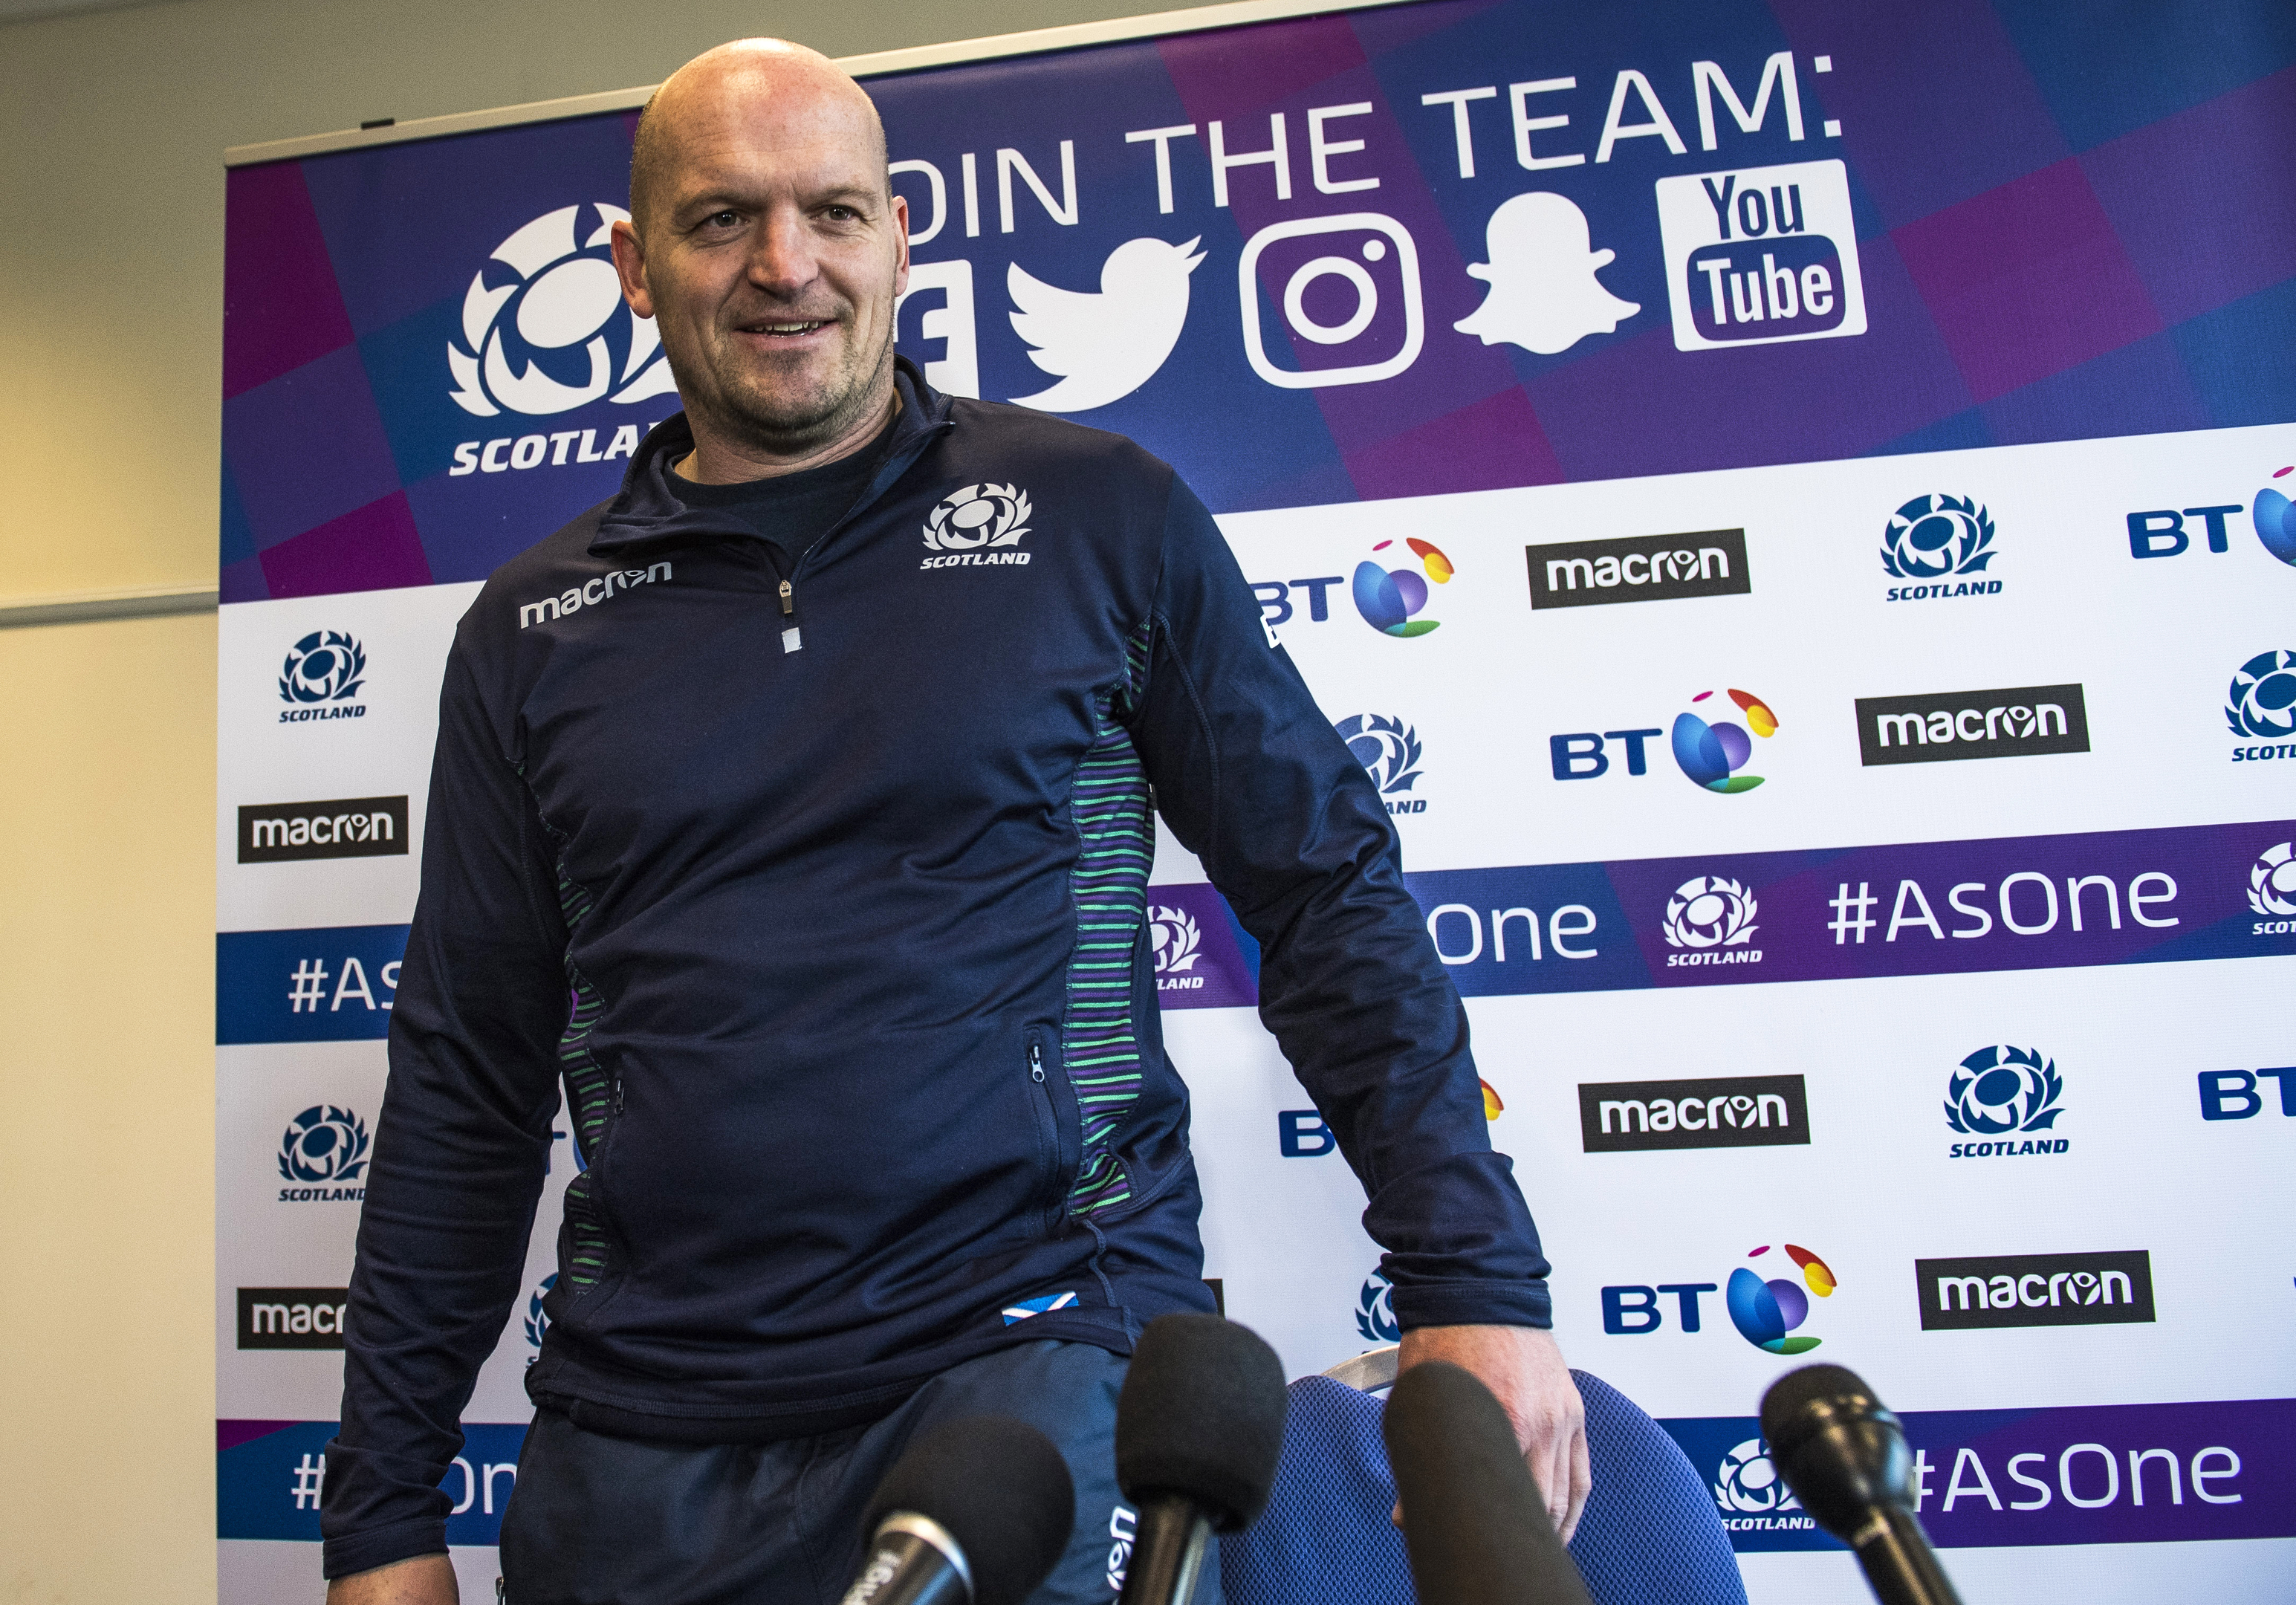 Gregor Townsend played it straight announcing an unchanged starting team for the Calcutta Cup.